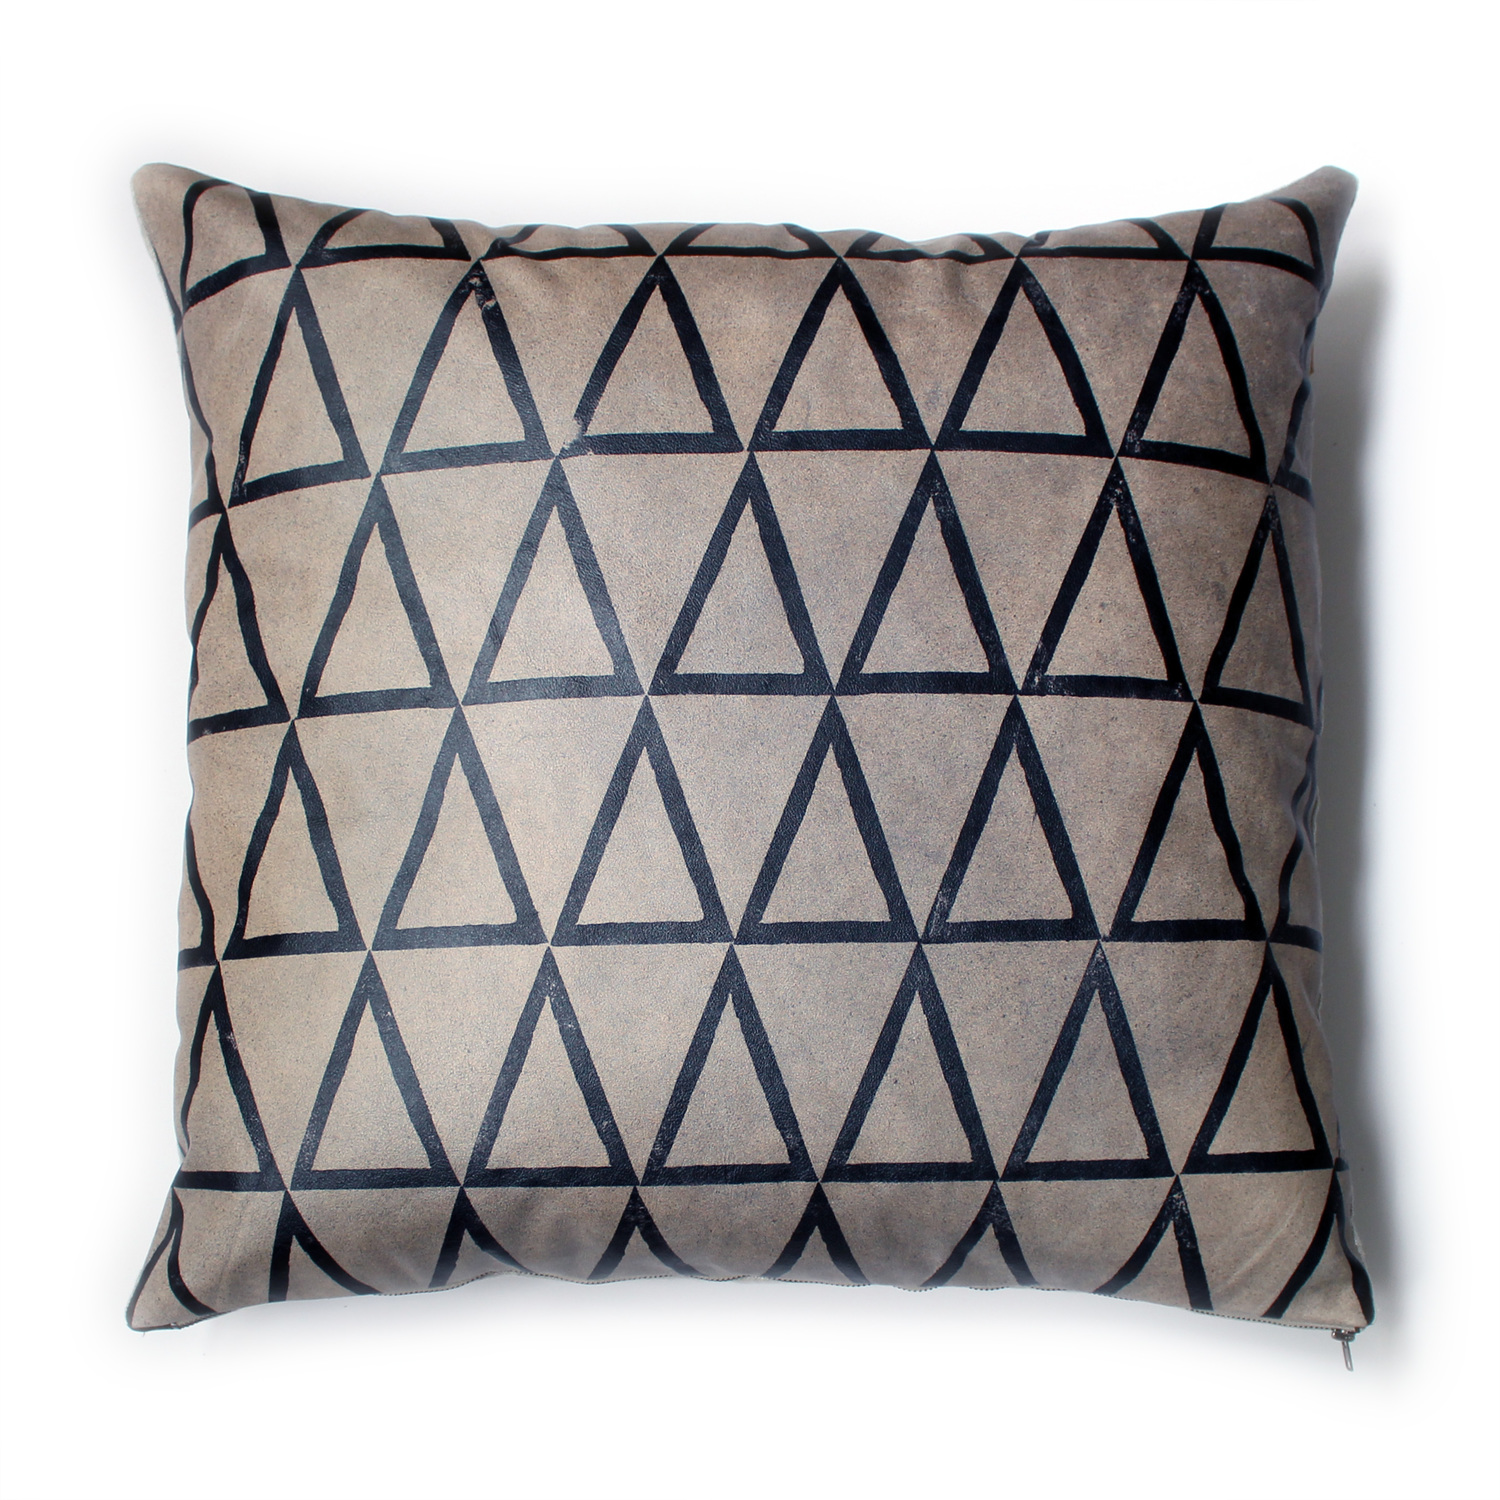 Avo slant triangle pillow 22x22 graphite